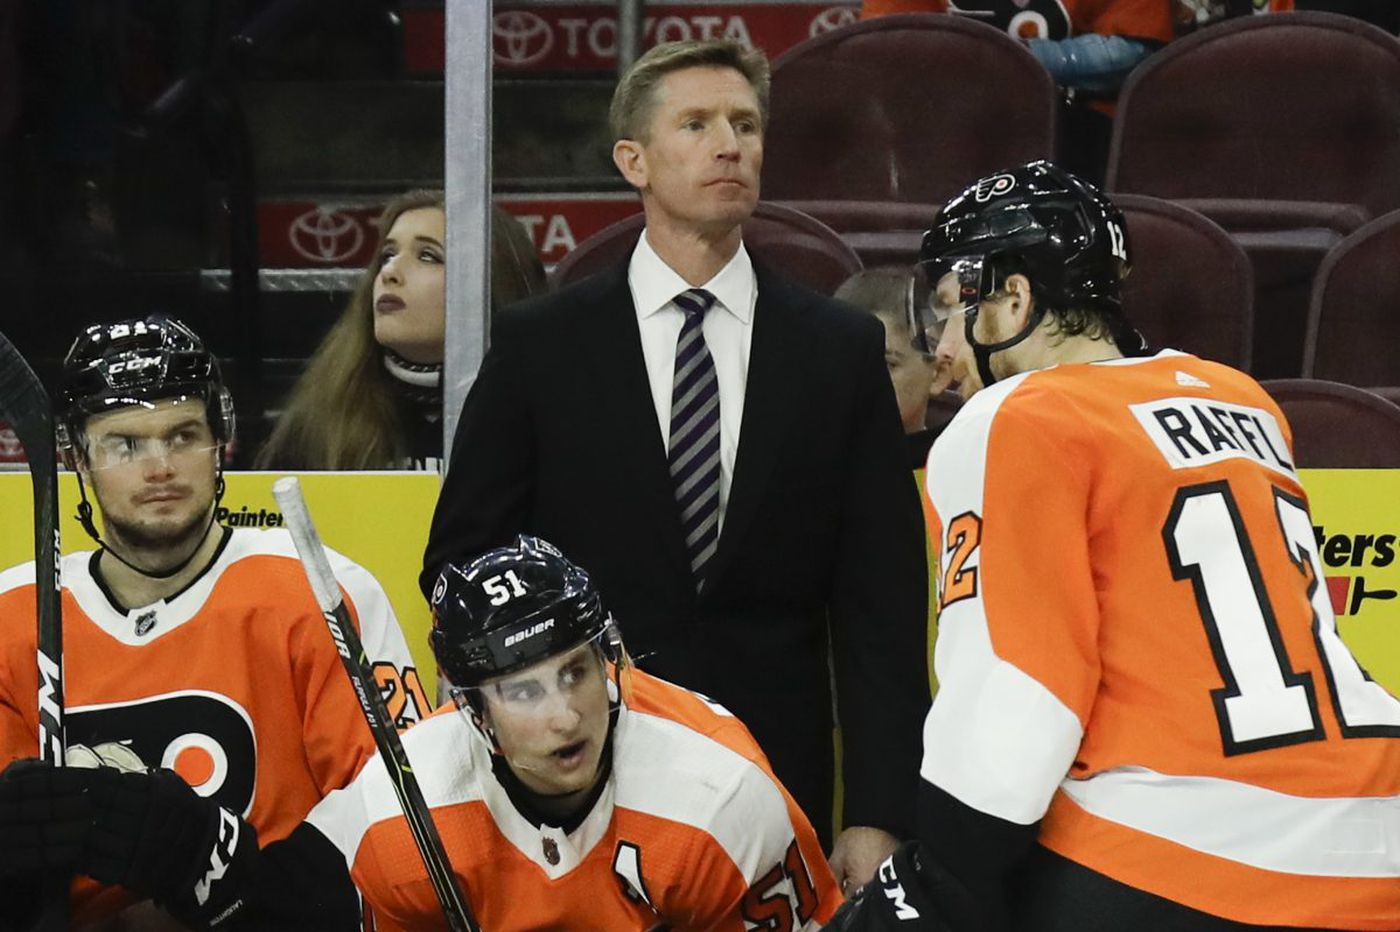 Having lost the room, Flyers showed Dave Hakstol the door | Sam Donnellon